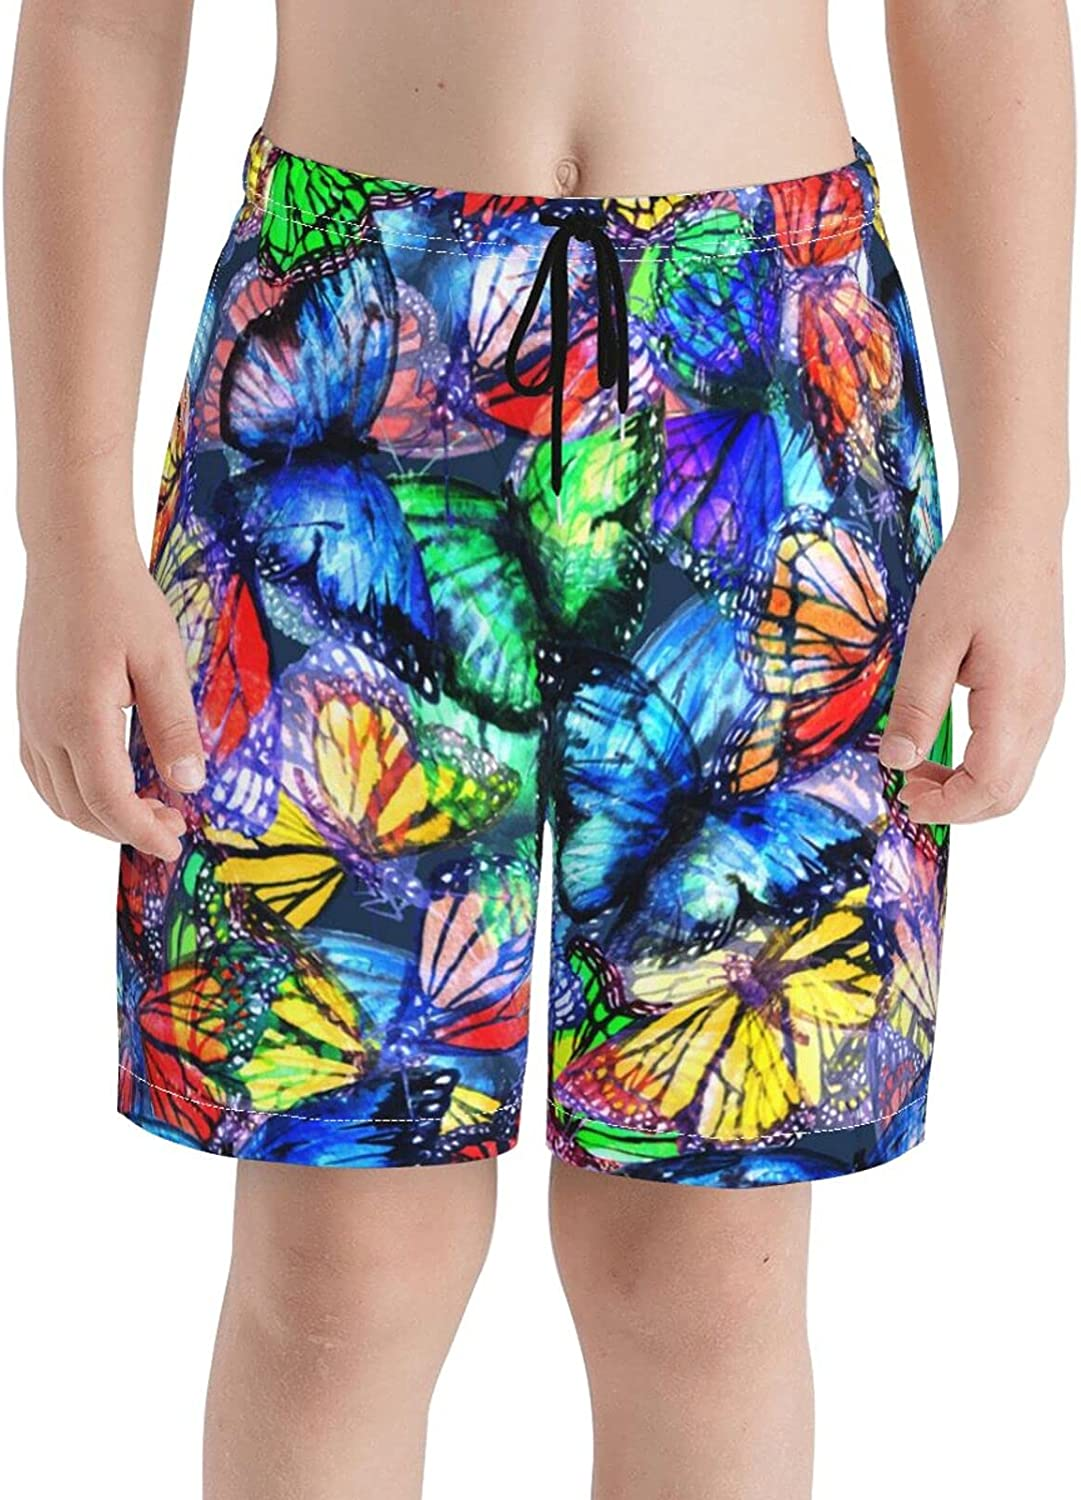 Butterfly Color Boys Quick Dry Swim Trunks Youth Soft Beach Surfing Board Shorts 7-20 Years